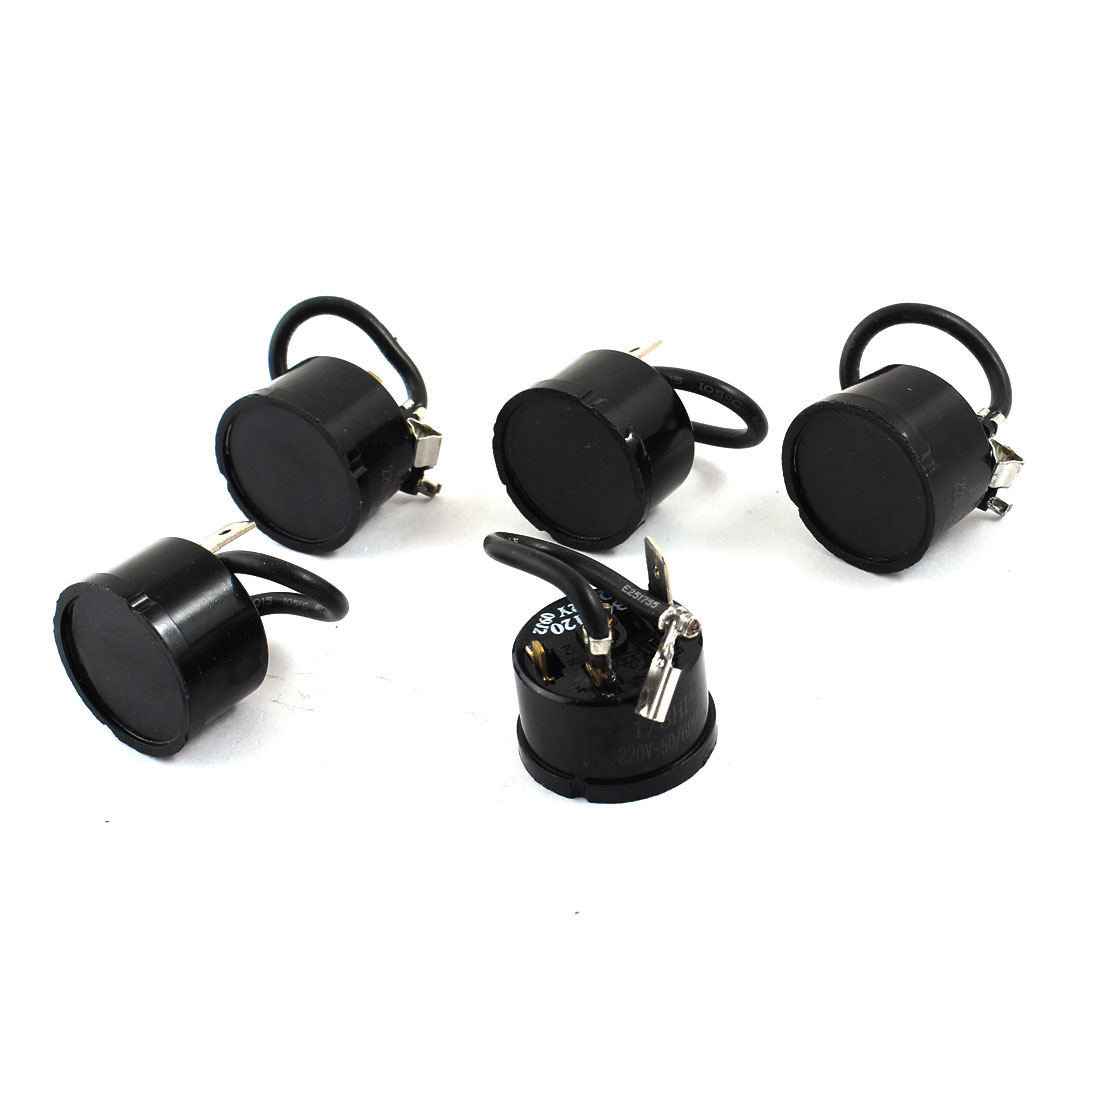 Black 1/8 HP Fridge Component Overload Thermal Protect Relay Starter 5pcs 220V